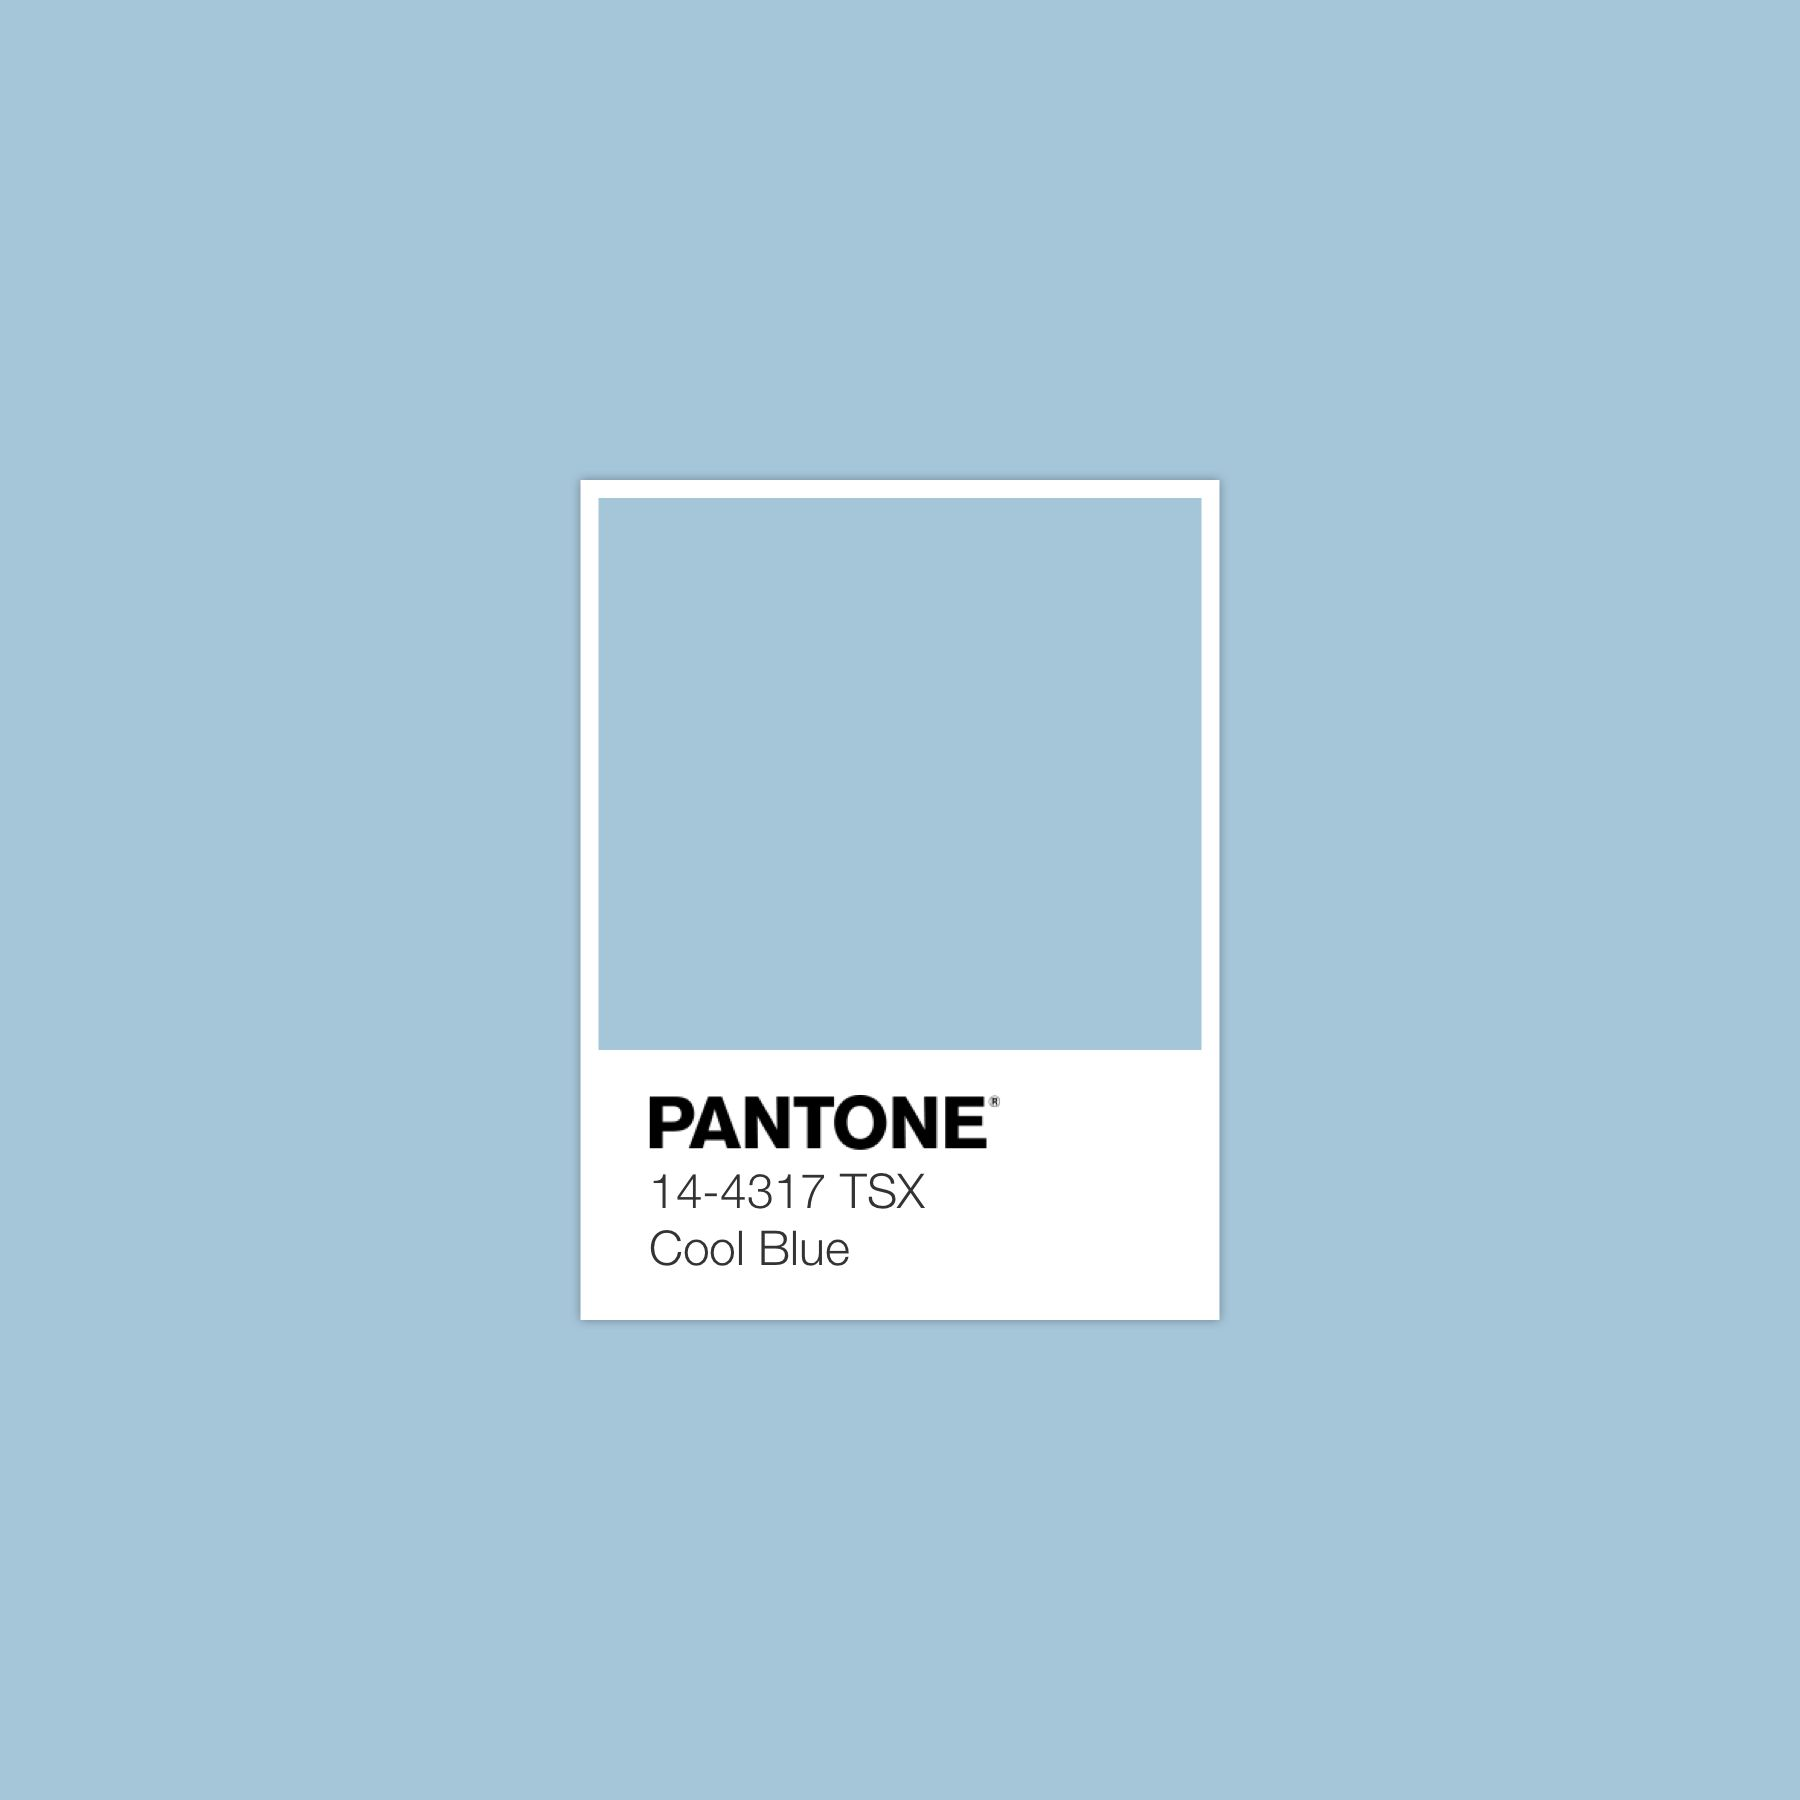 Cool Blue Paint Coolblue Pantone Luxurydotcom Pantone In 2019 Pantone Color